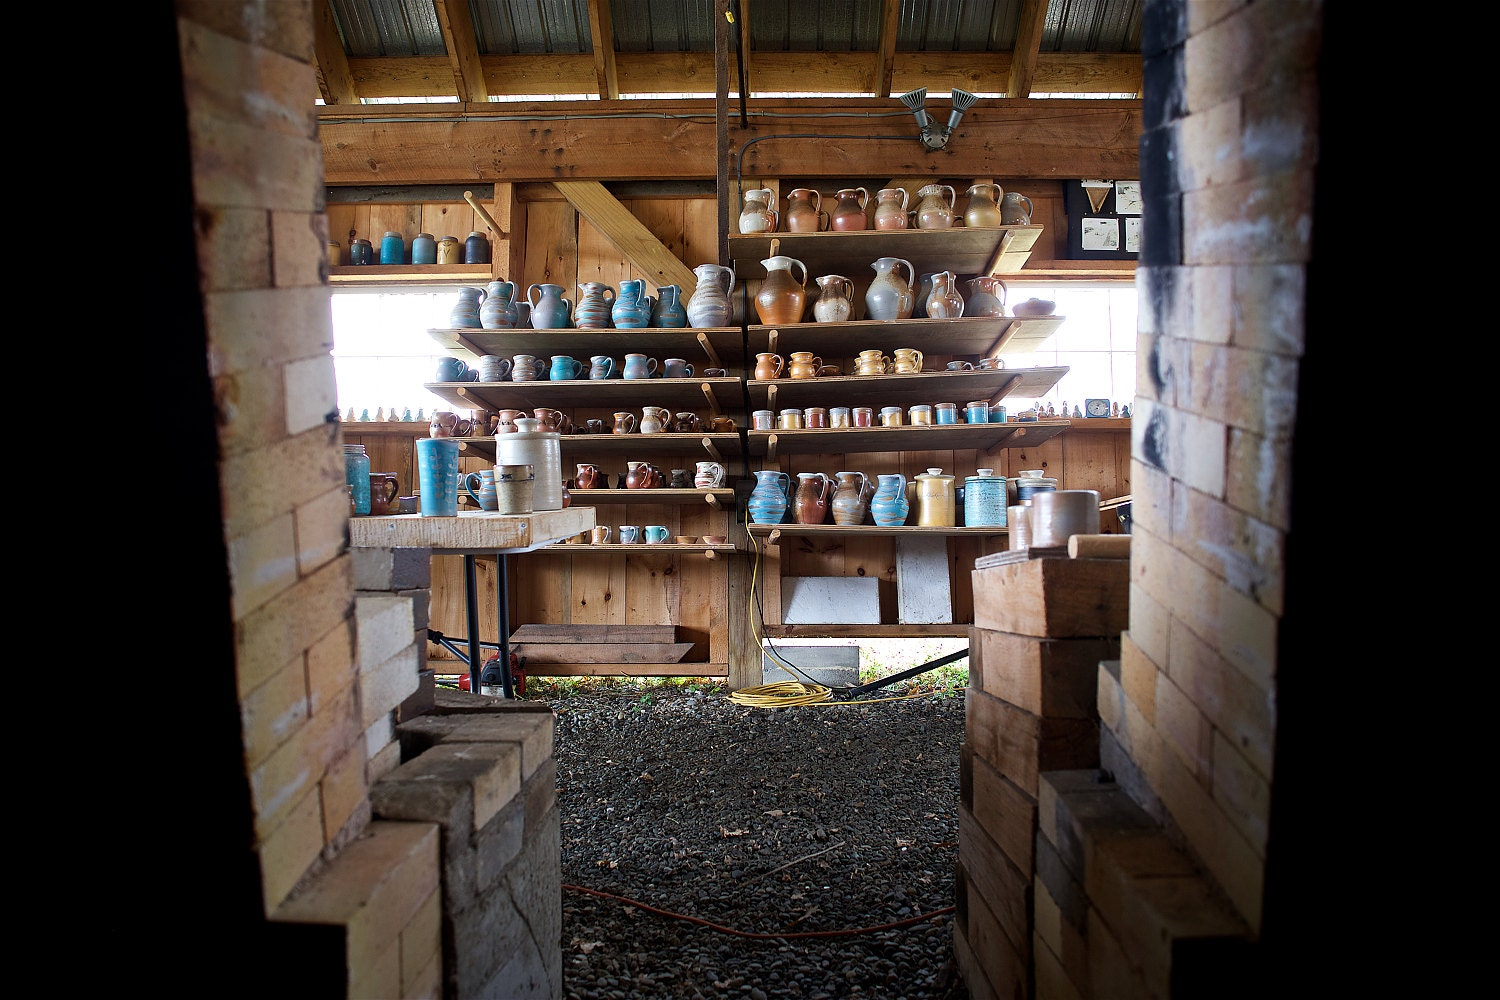 Kiln barn and wood-fired pottery